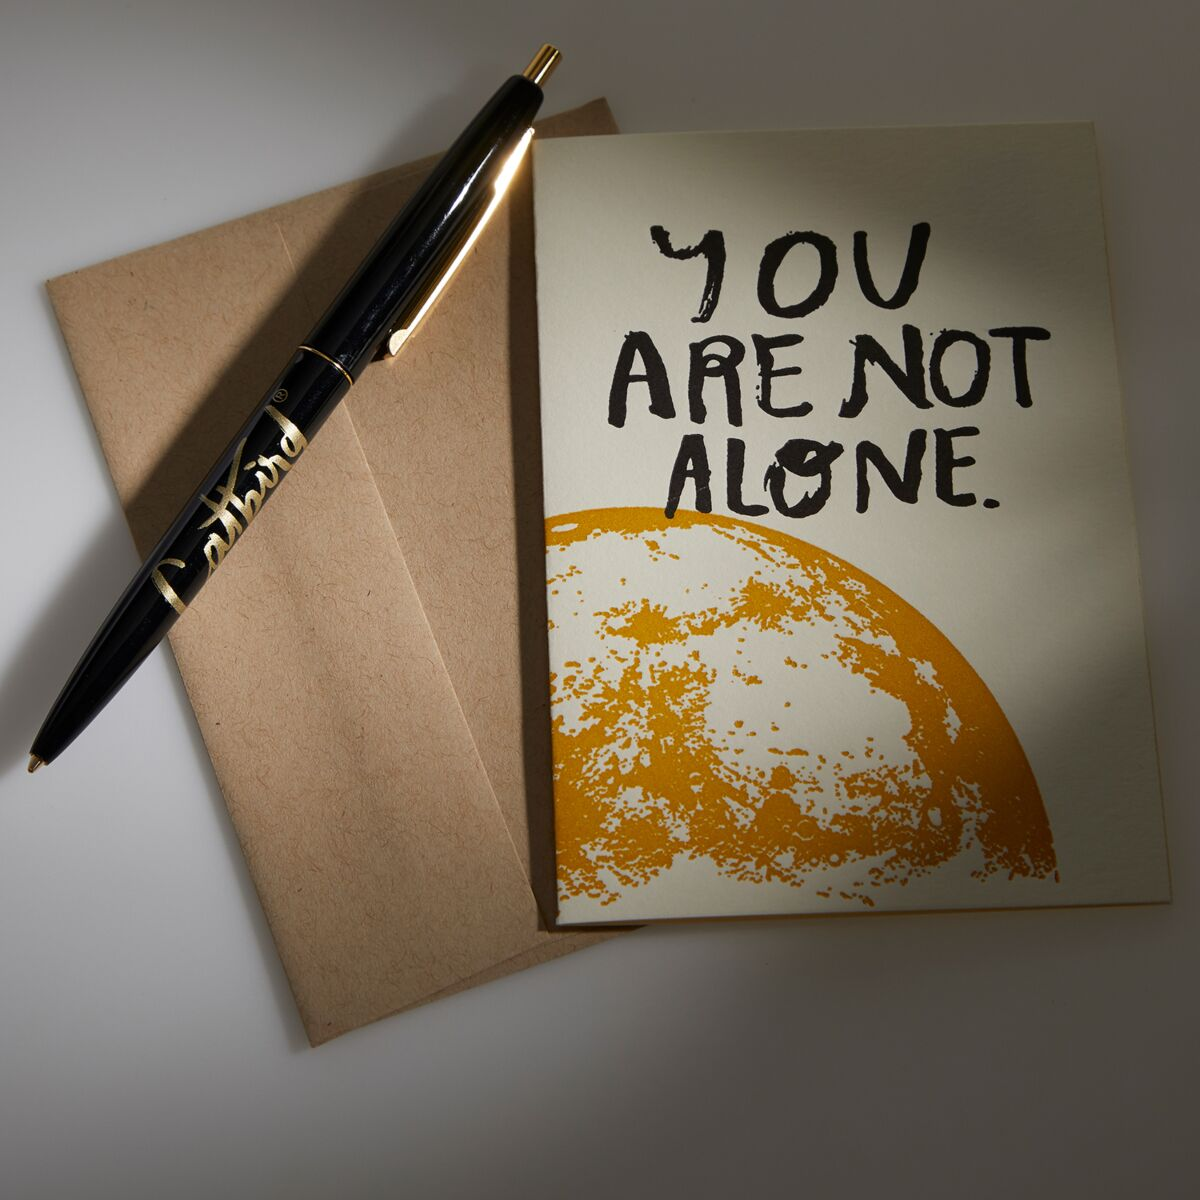 You Are Not Alone Card image